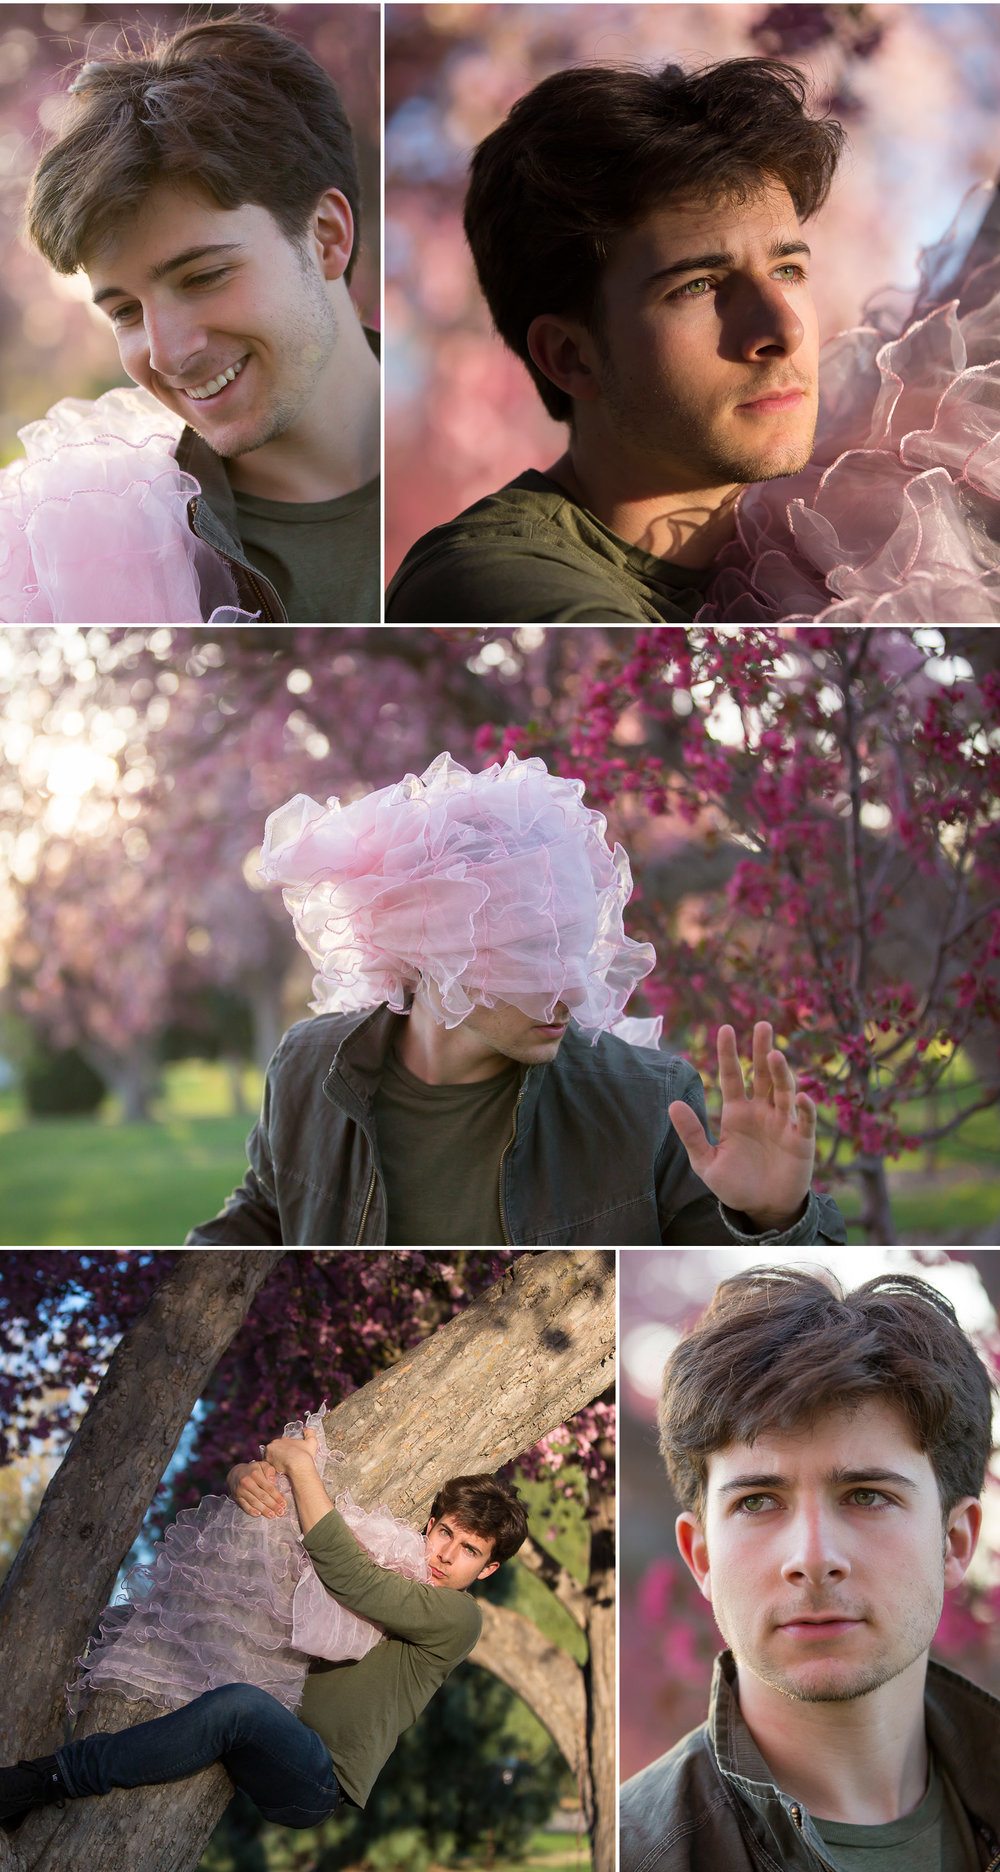 Silly Guy Blossom Portraits in afternoon trees with Denver Photographer Jennifer Koskinen, Merritt Portrait Studio